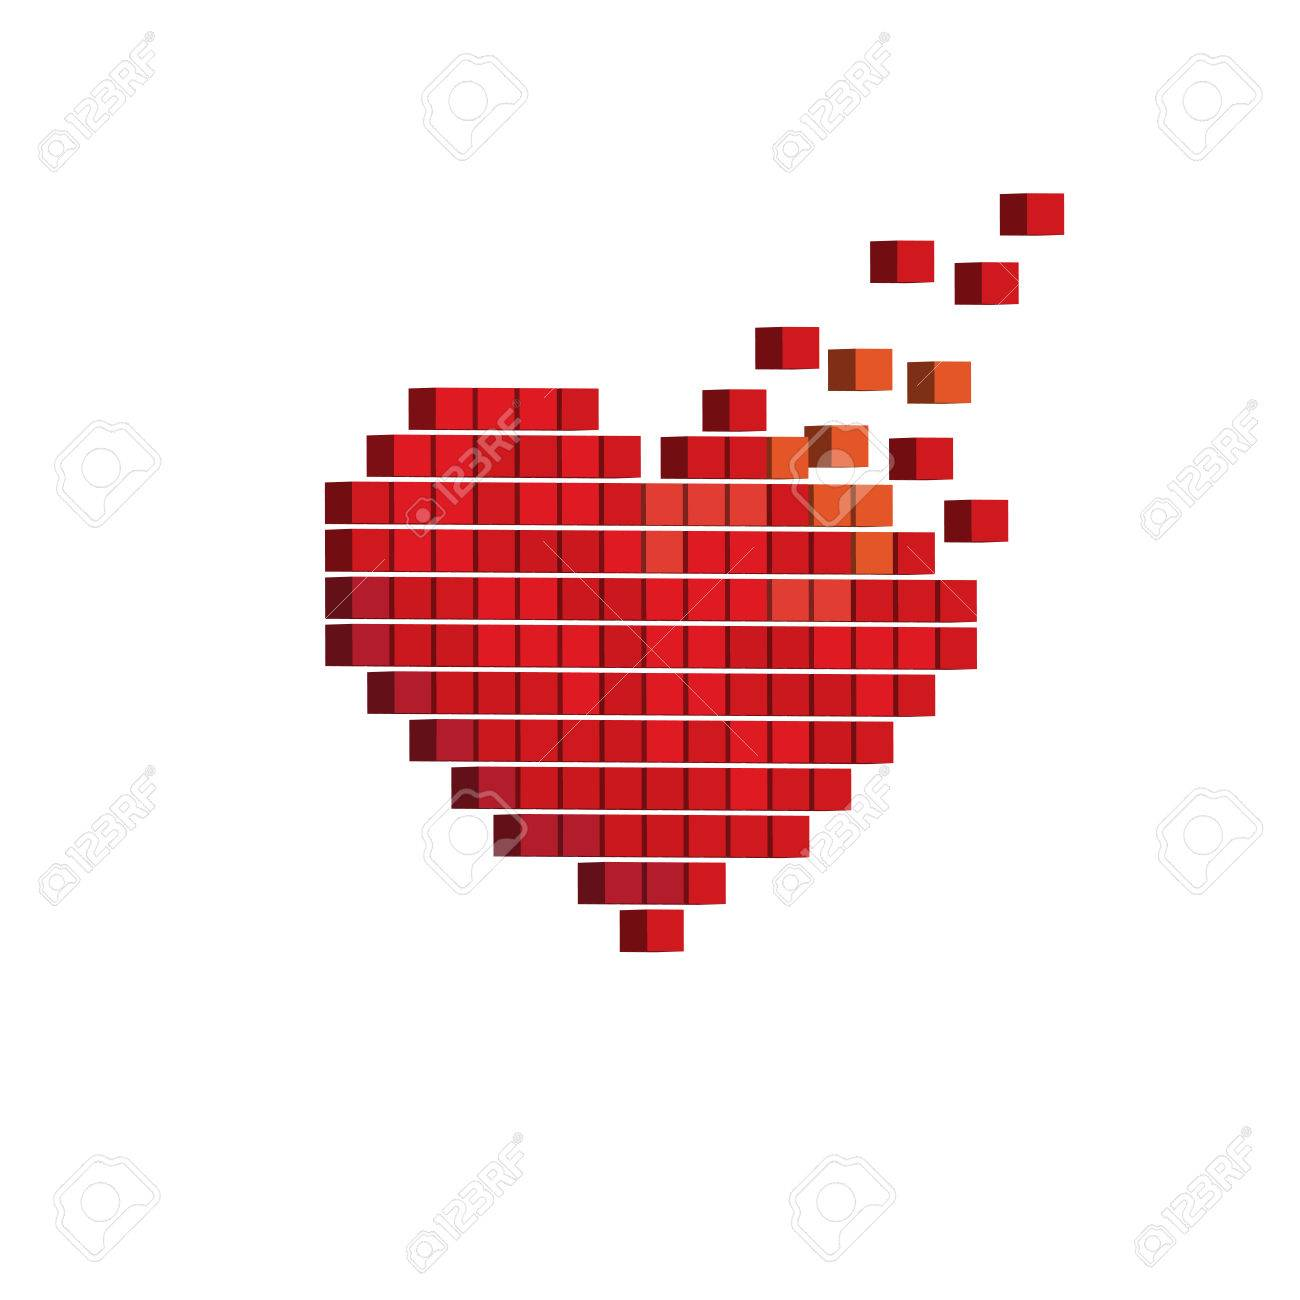 Pixels Art 3d Heart Designs Love Concept